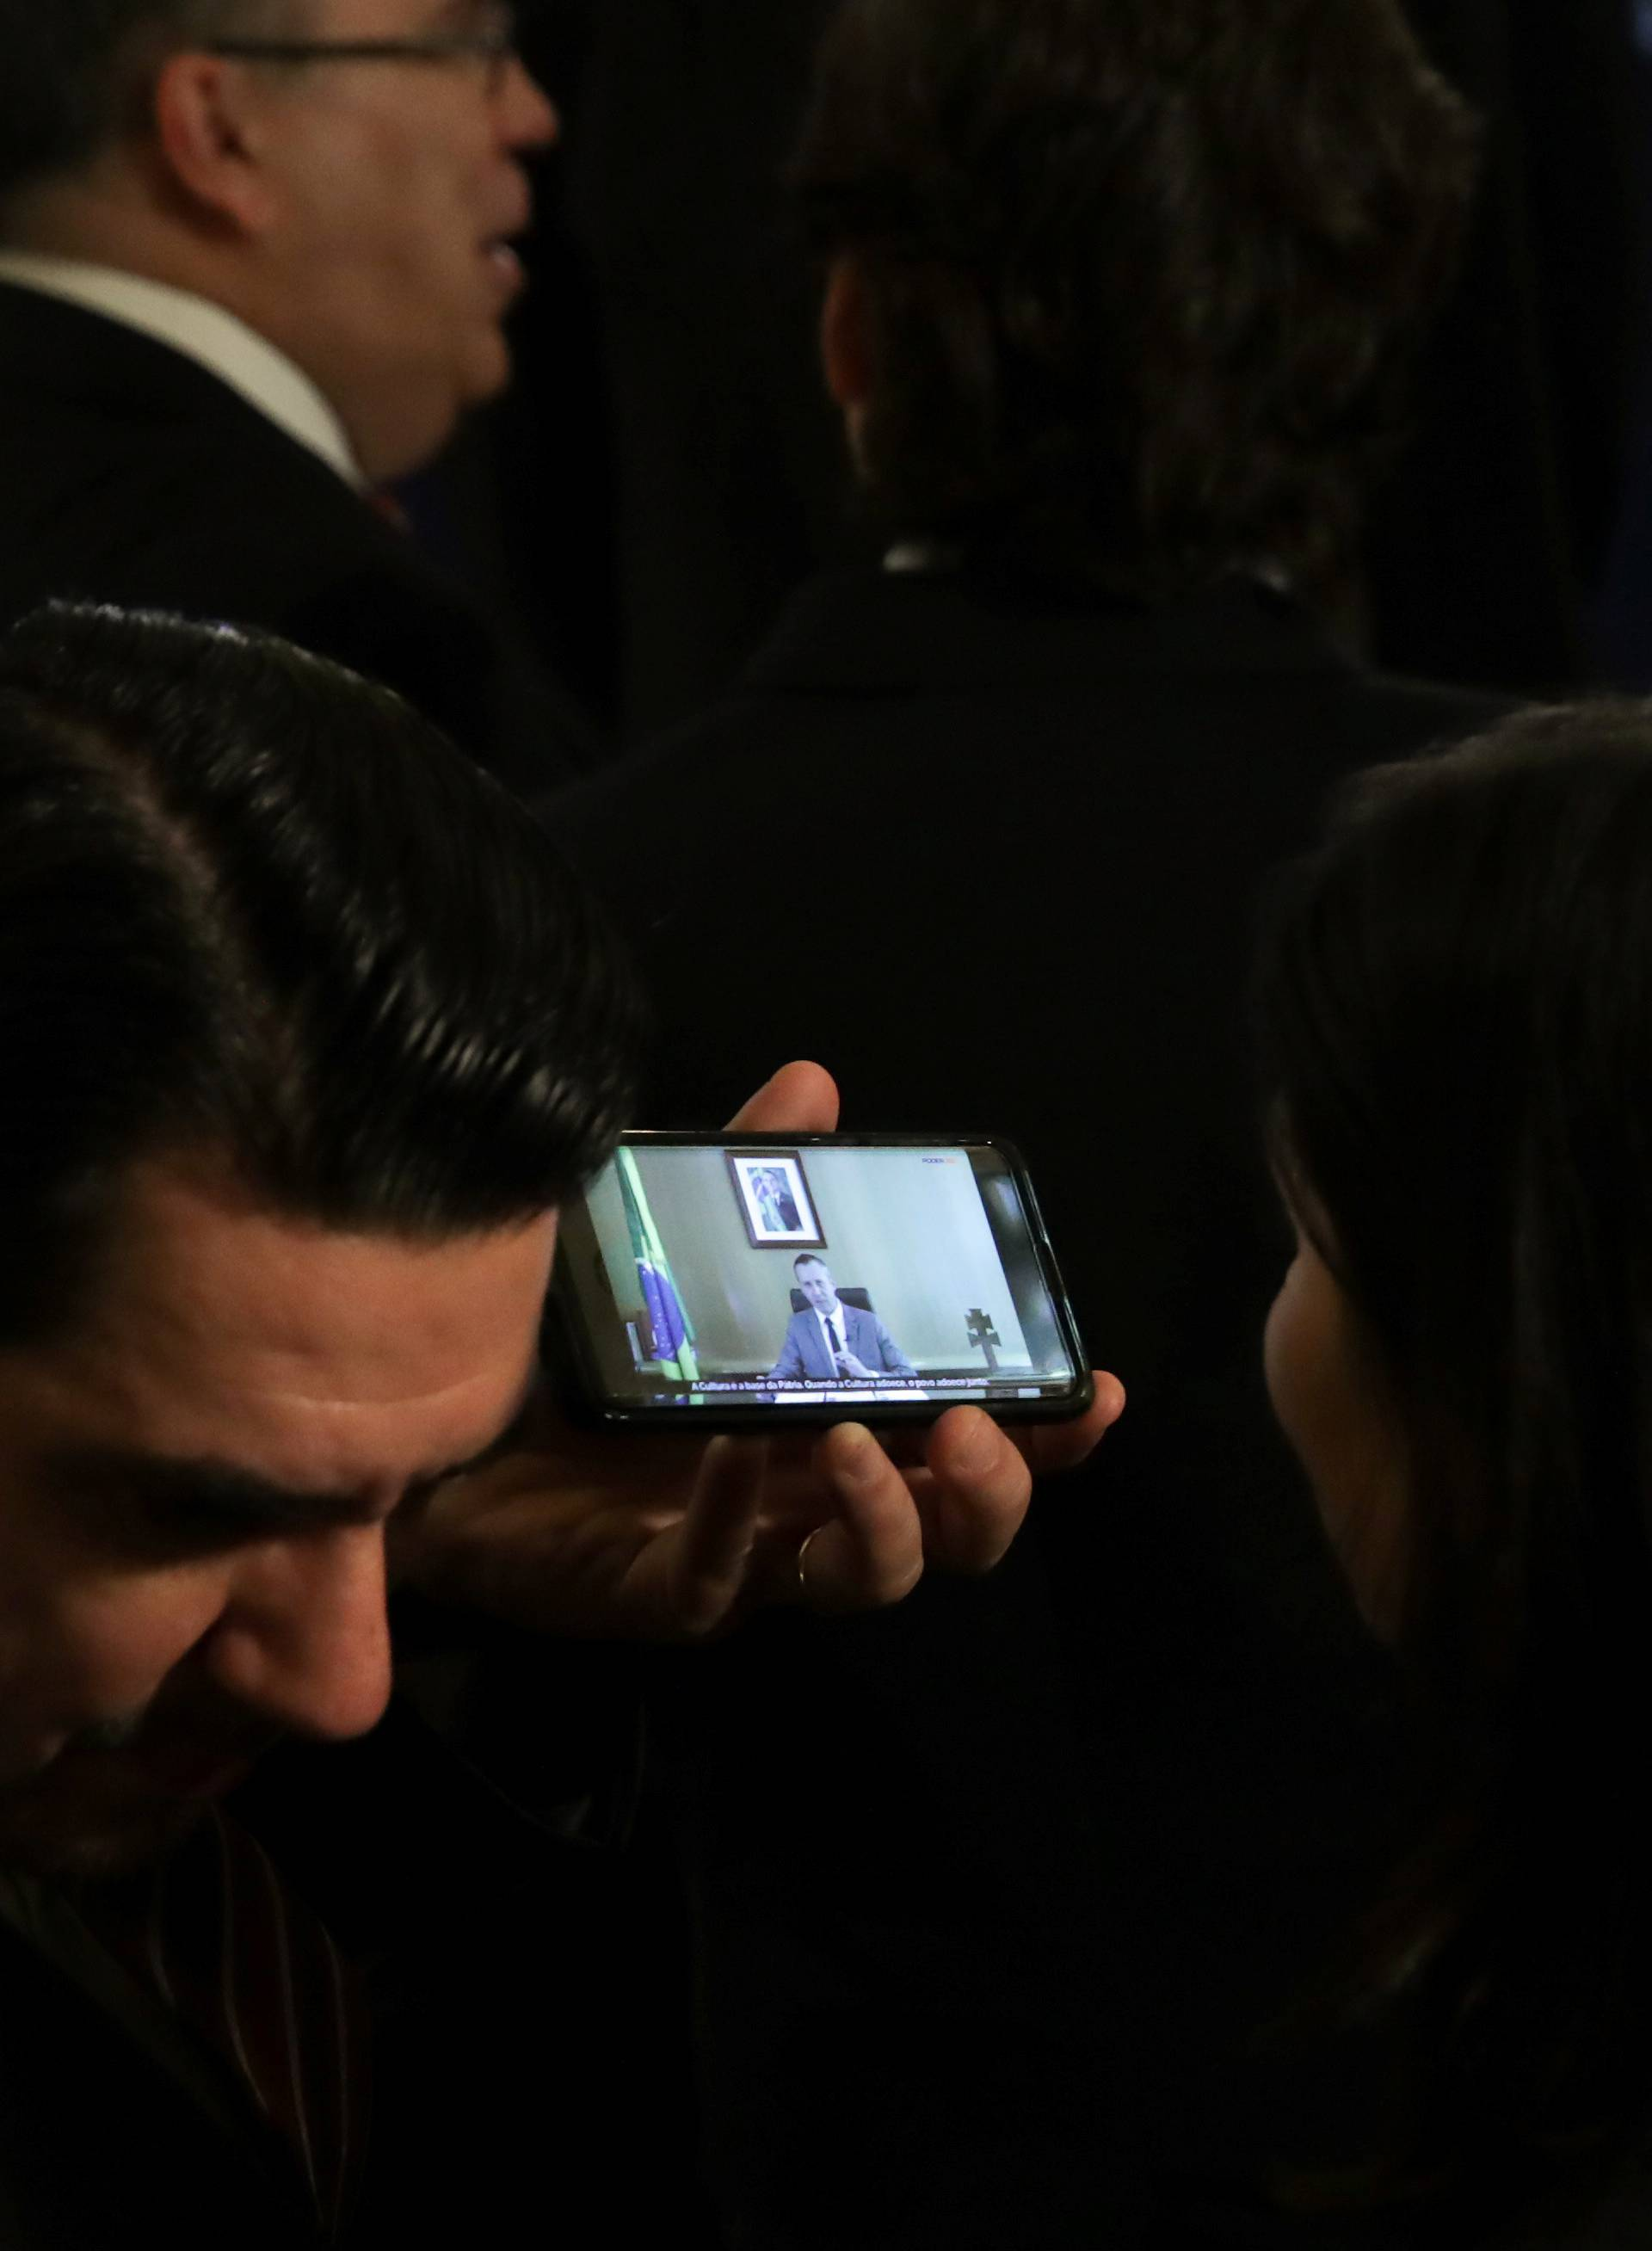 Diplomats watch a video of controversial remarks by Brazil's Culture Secretary Alvim as they gather at the Organization of American States for remarks by U.S. Secretary of State Pompeo at the OAS in Washington